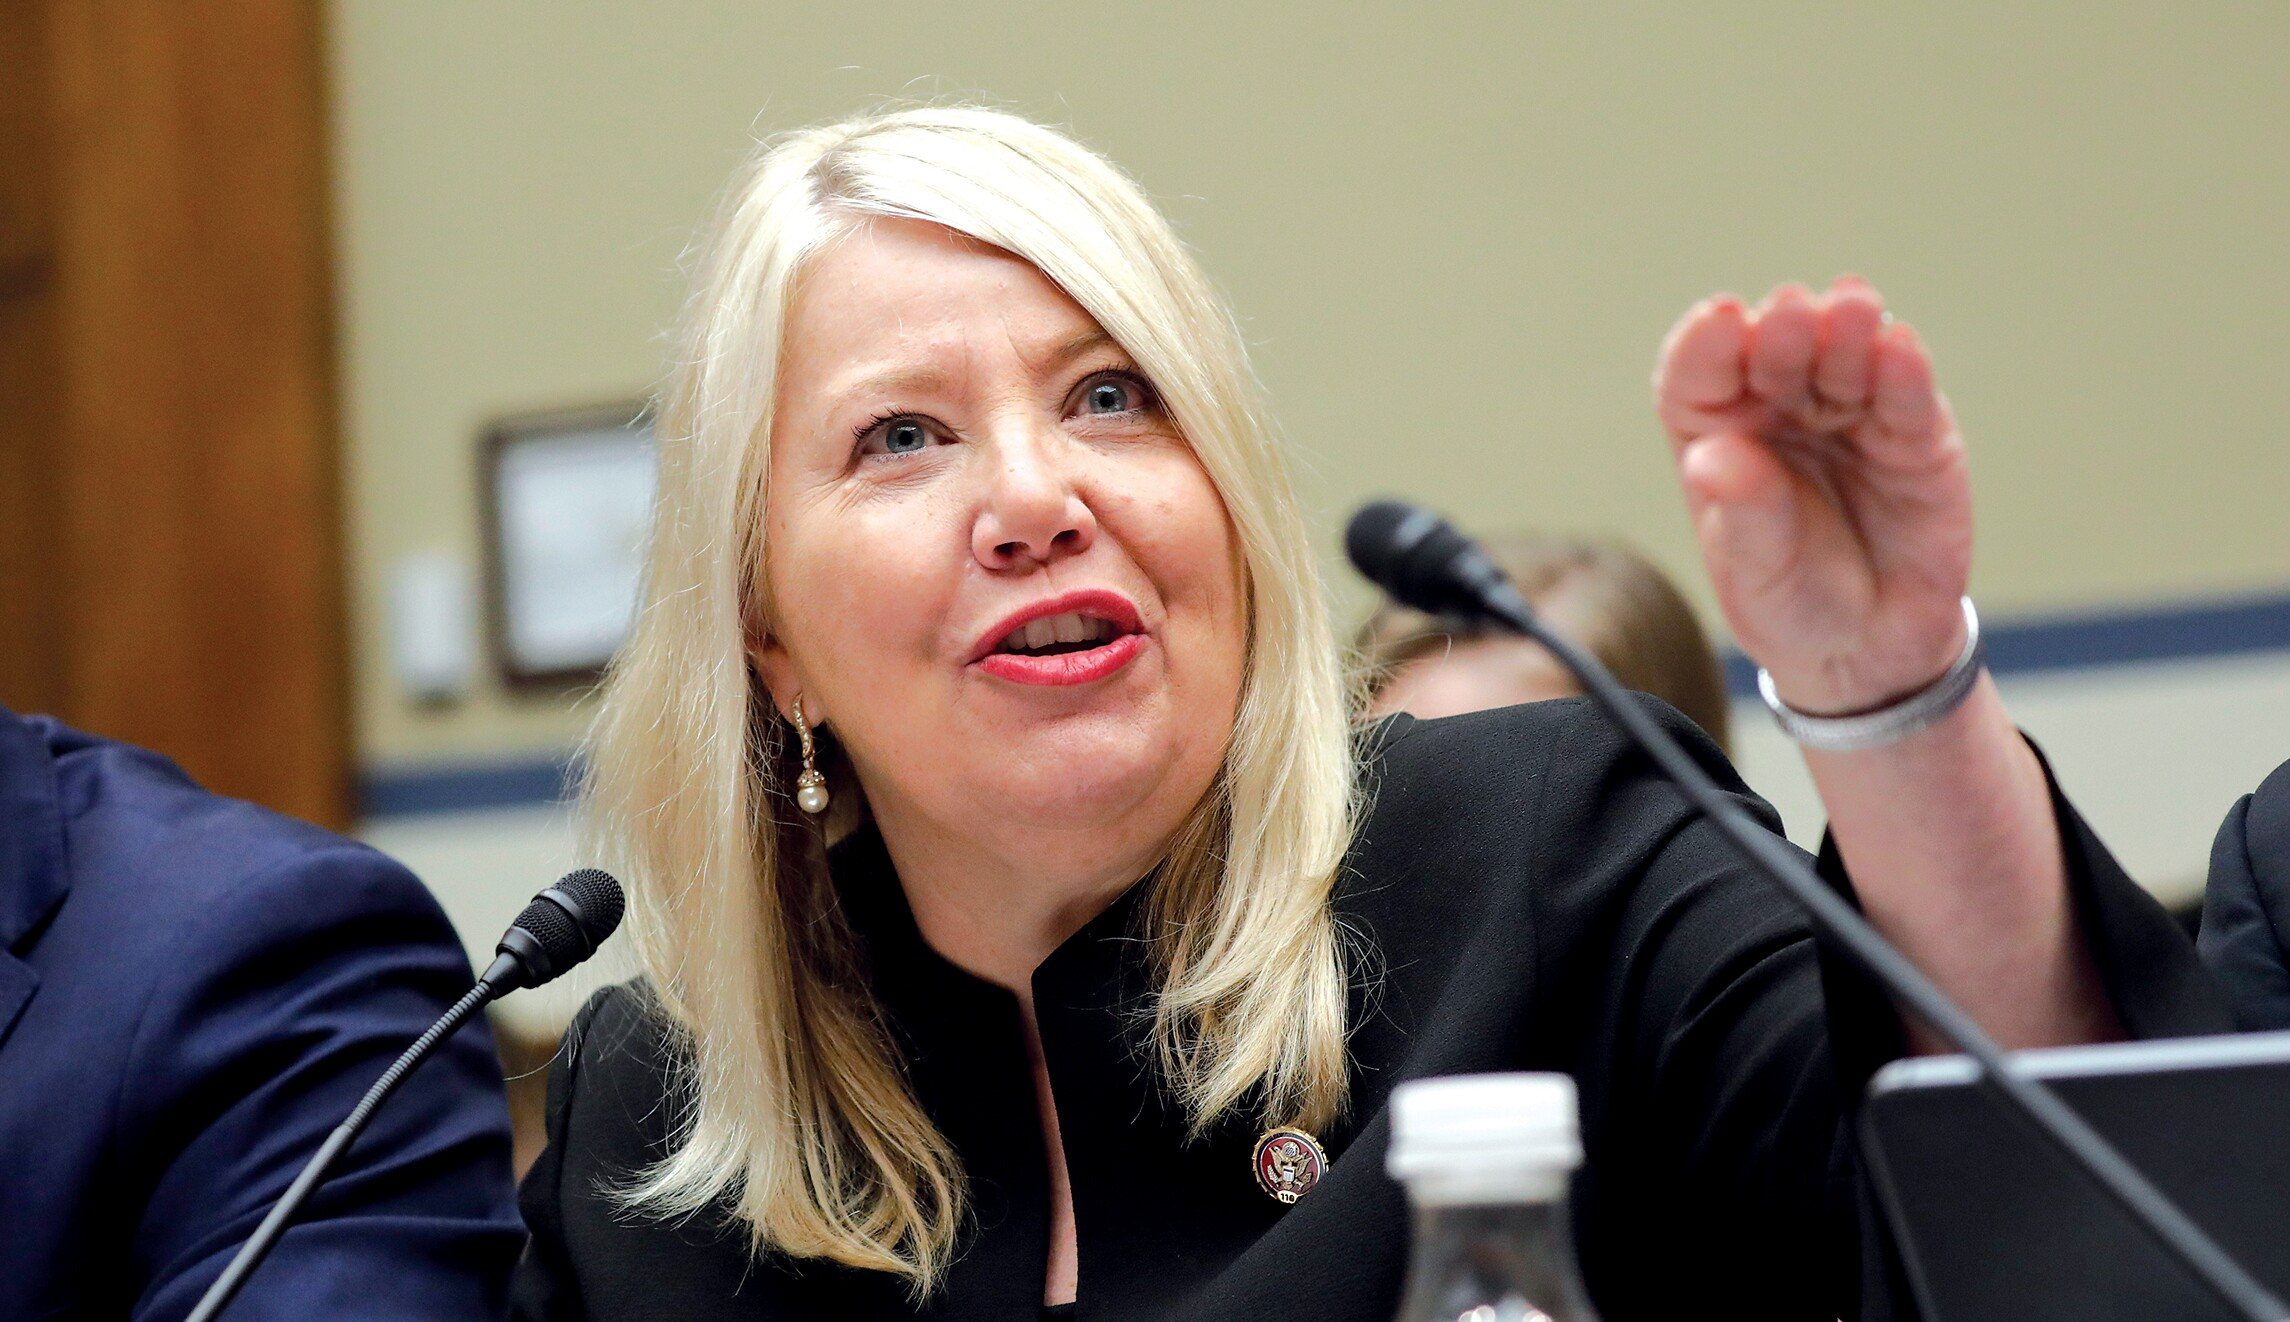 The unlikely congresswoman: Debbie Lesko hits the ground running